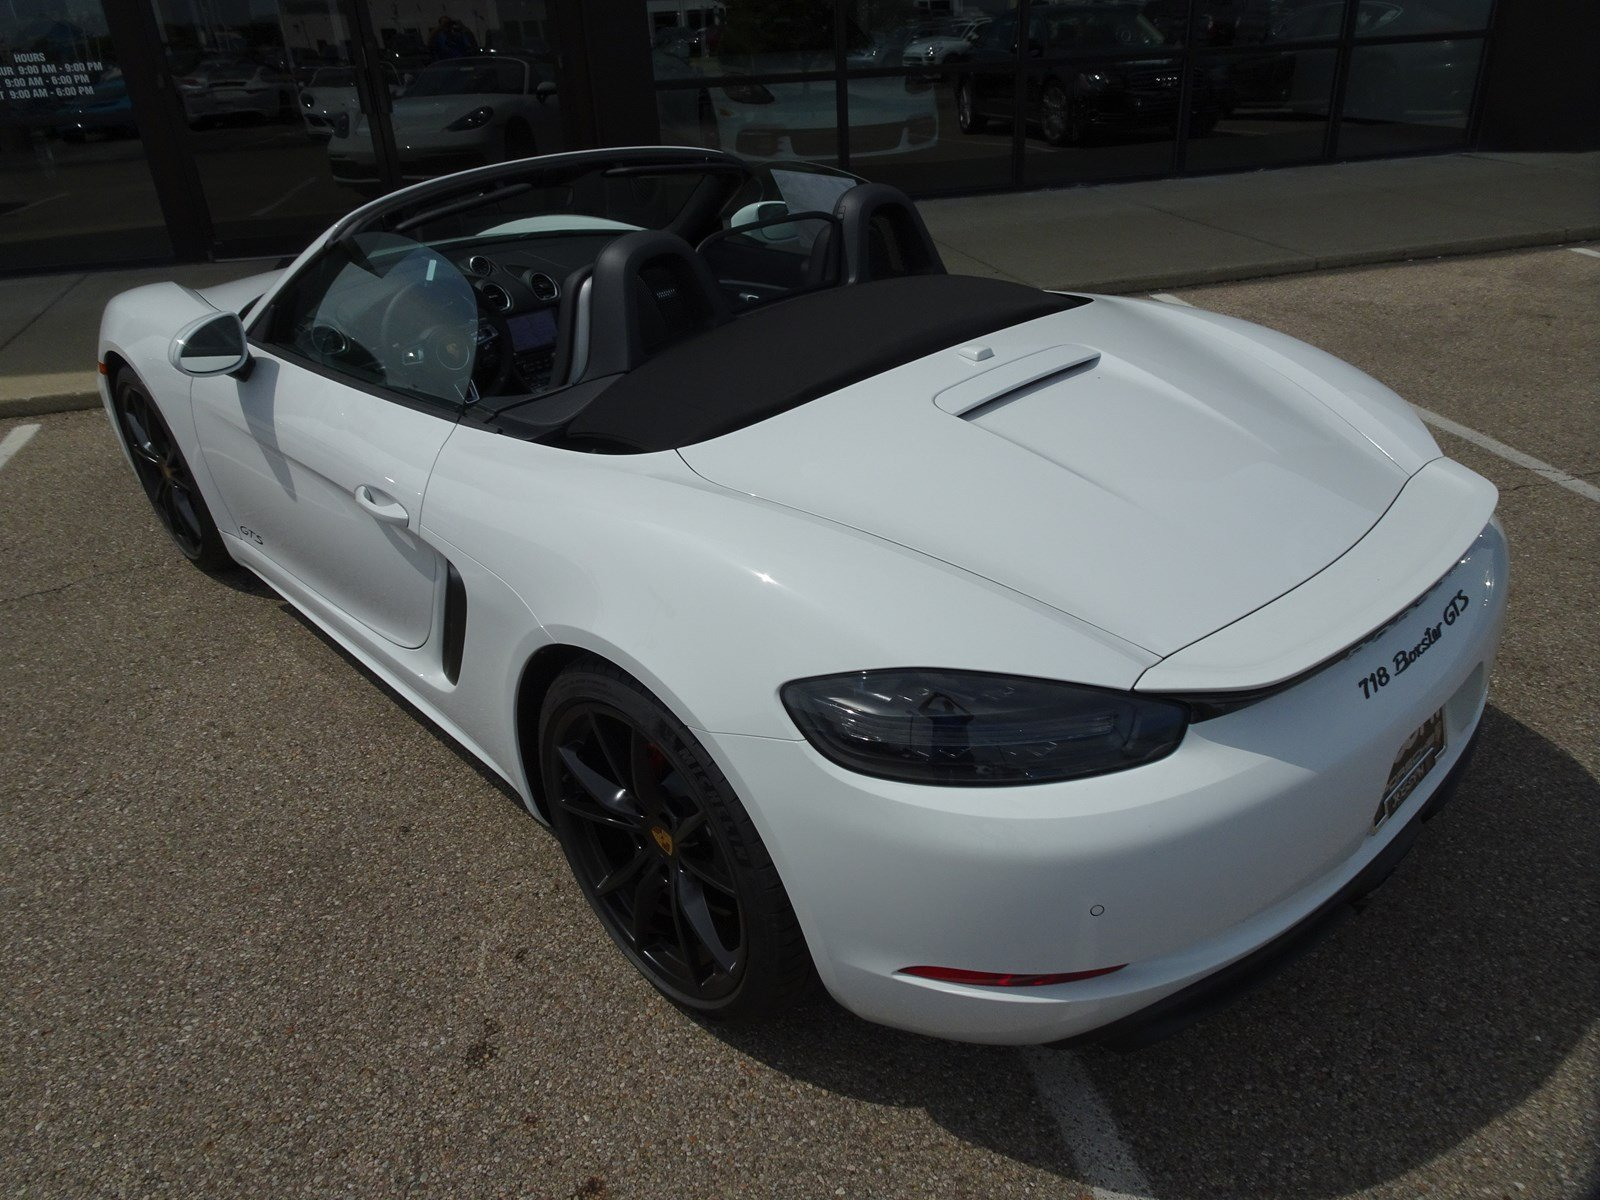 New 2019 Porsche 718 Boxster GTS Cabriolet for Sale | Kings